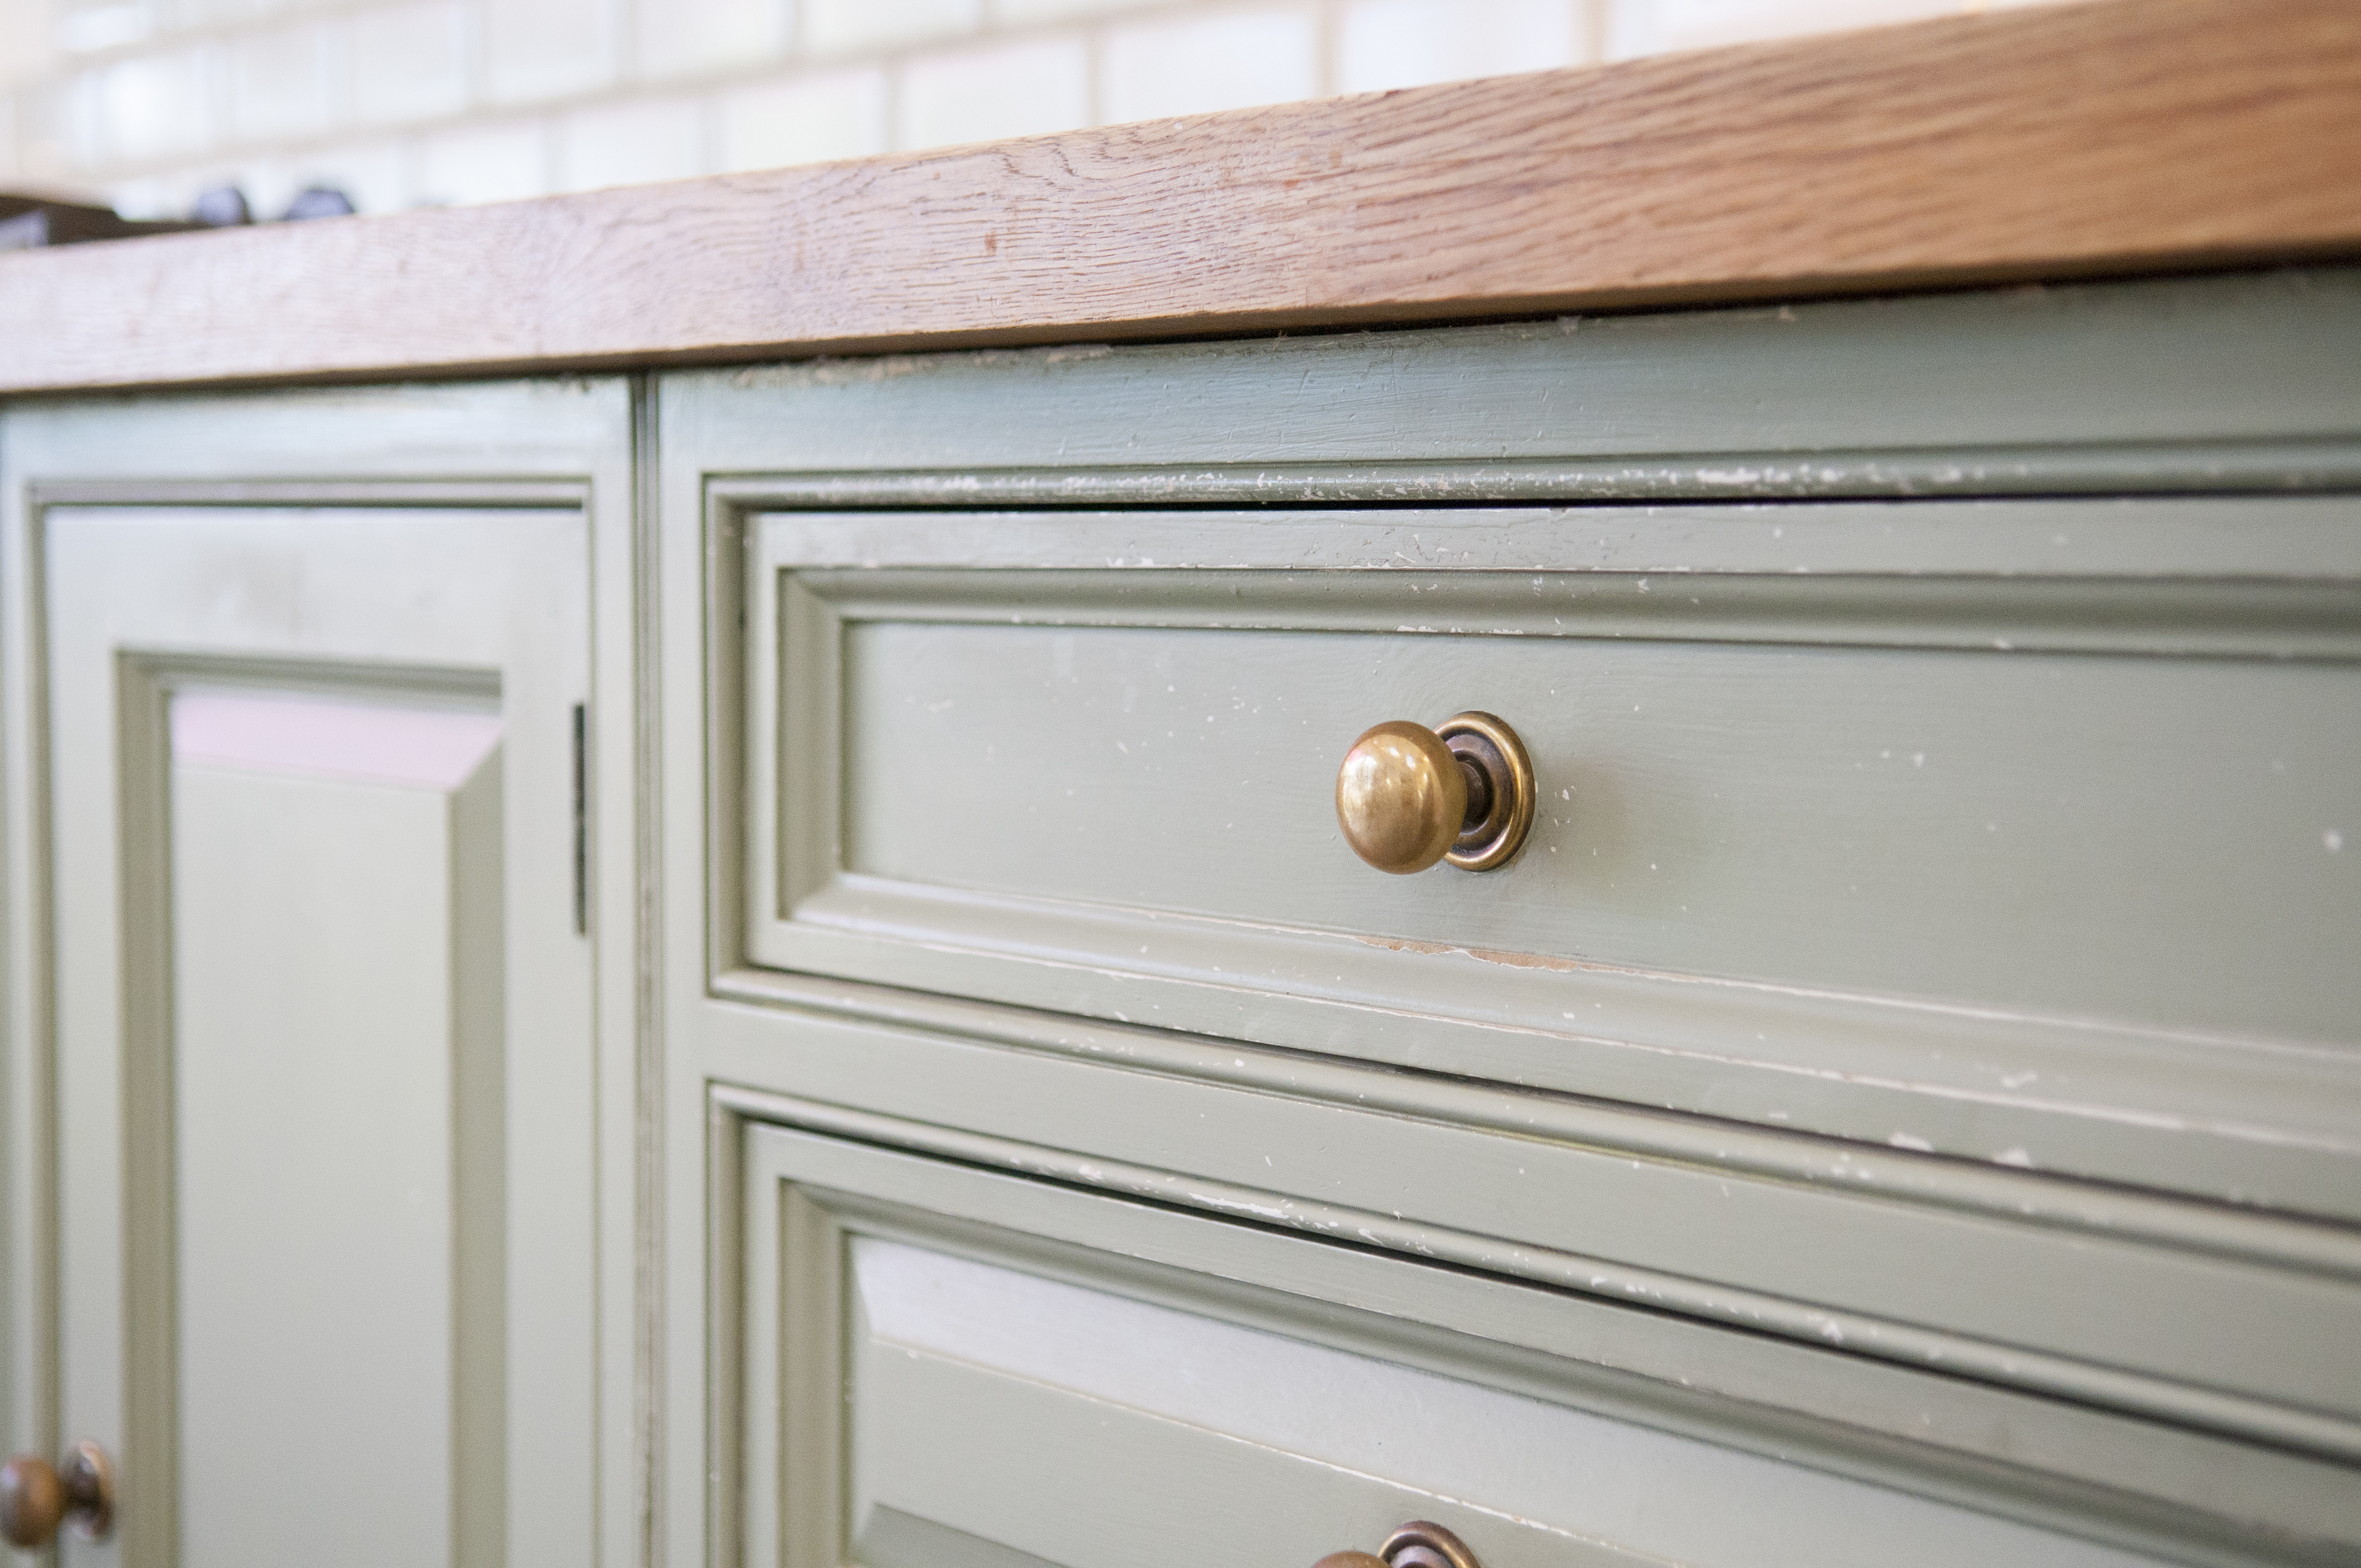 Kitchen Cabinet Refacing, Replacement Kitchen Cabinet Doors And Drawers Cost